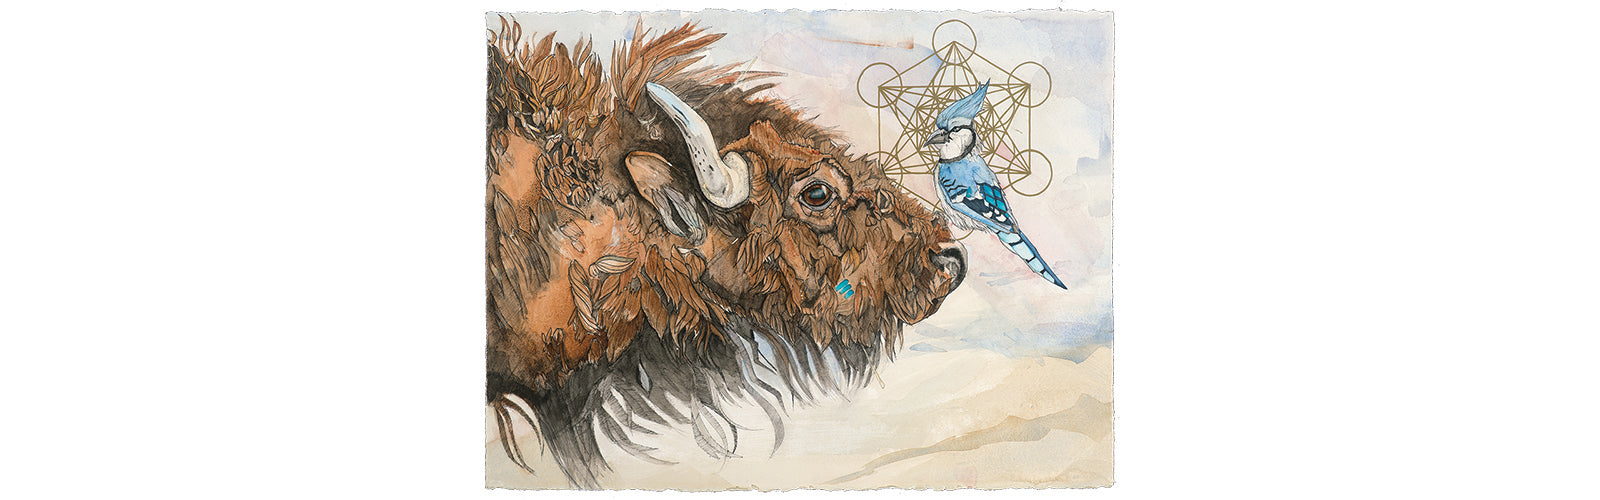 The knowledge and abundance represented in the buffalo. The clever messenger in the blue jay. They are both seekers. Metatron's Cube implies a gateway to higher vibrations. There's more to us than we know.